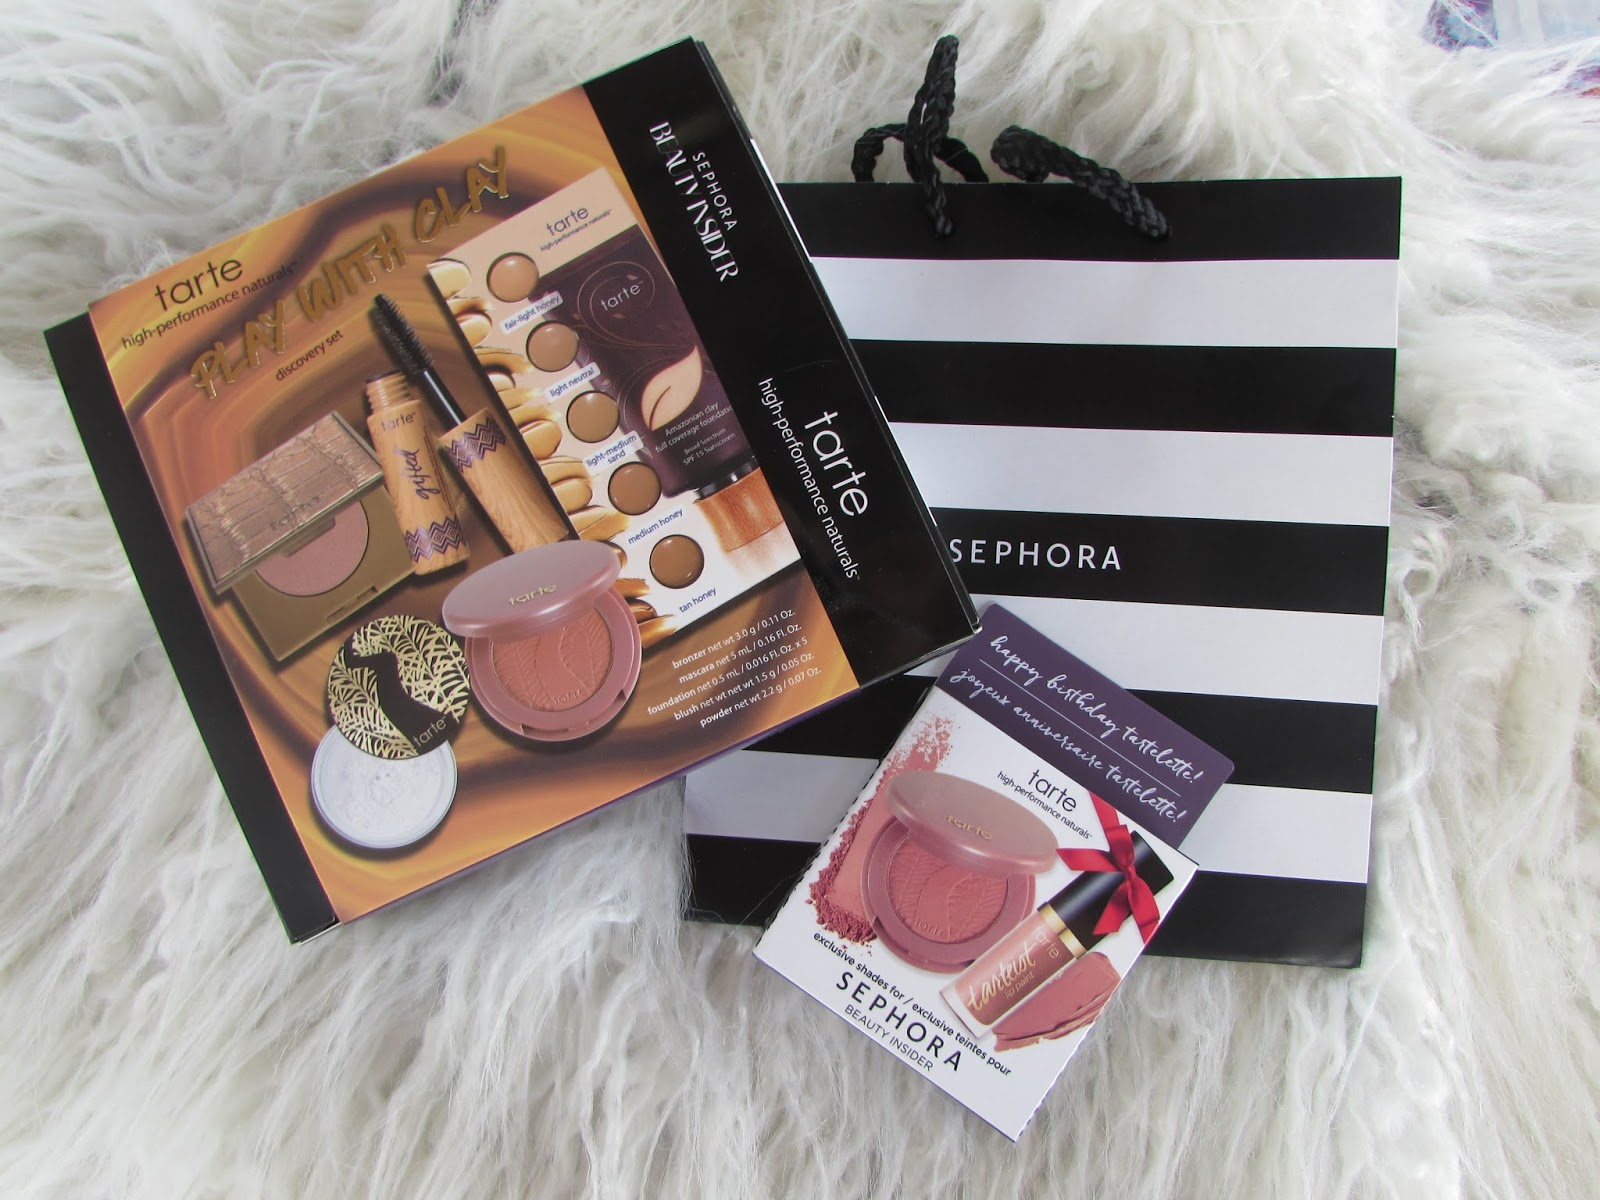 I Remember Getting My Sephora Member Card When Was Fifteen Years Old Had Just Started Blog And Super Serious About Makeup